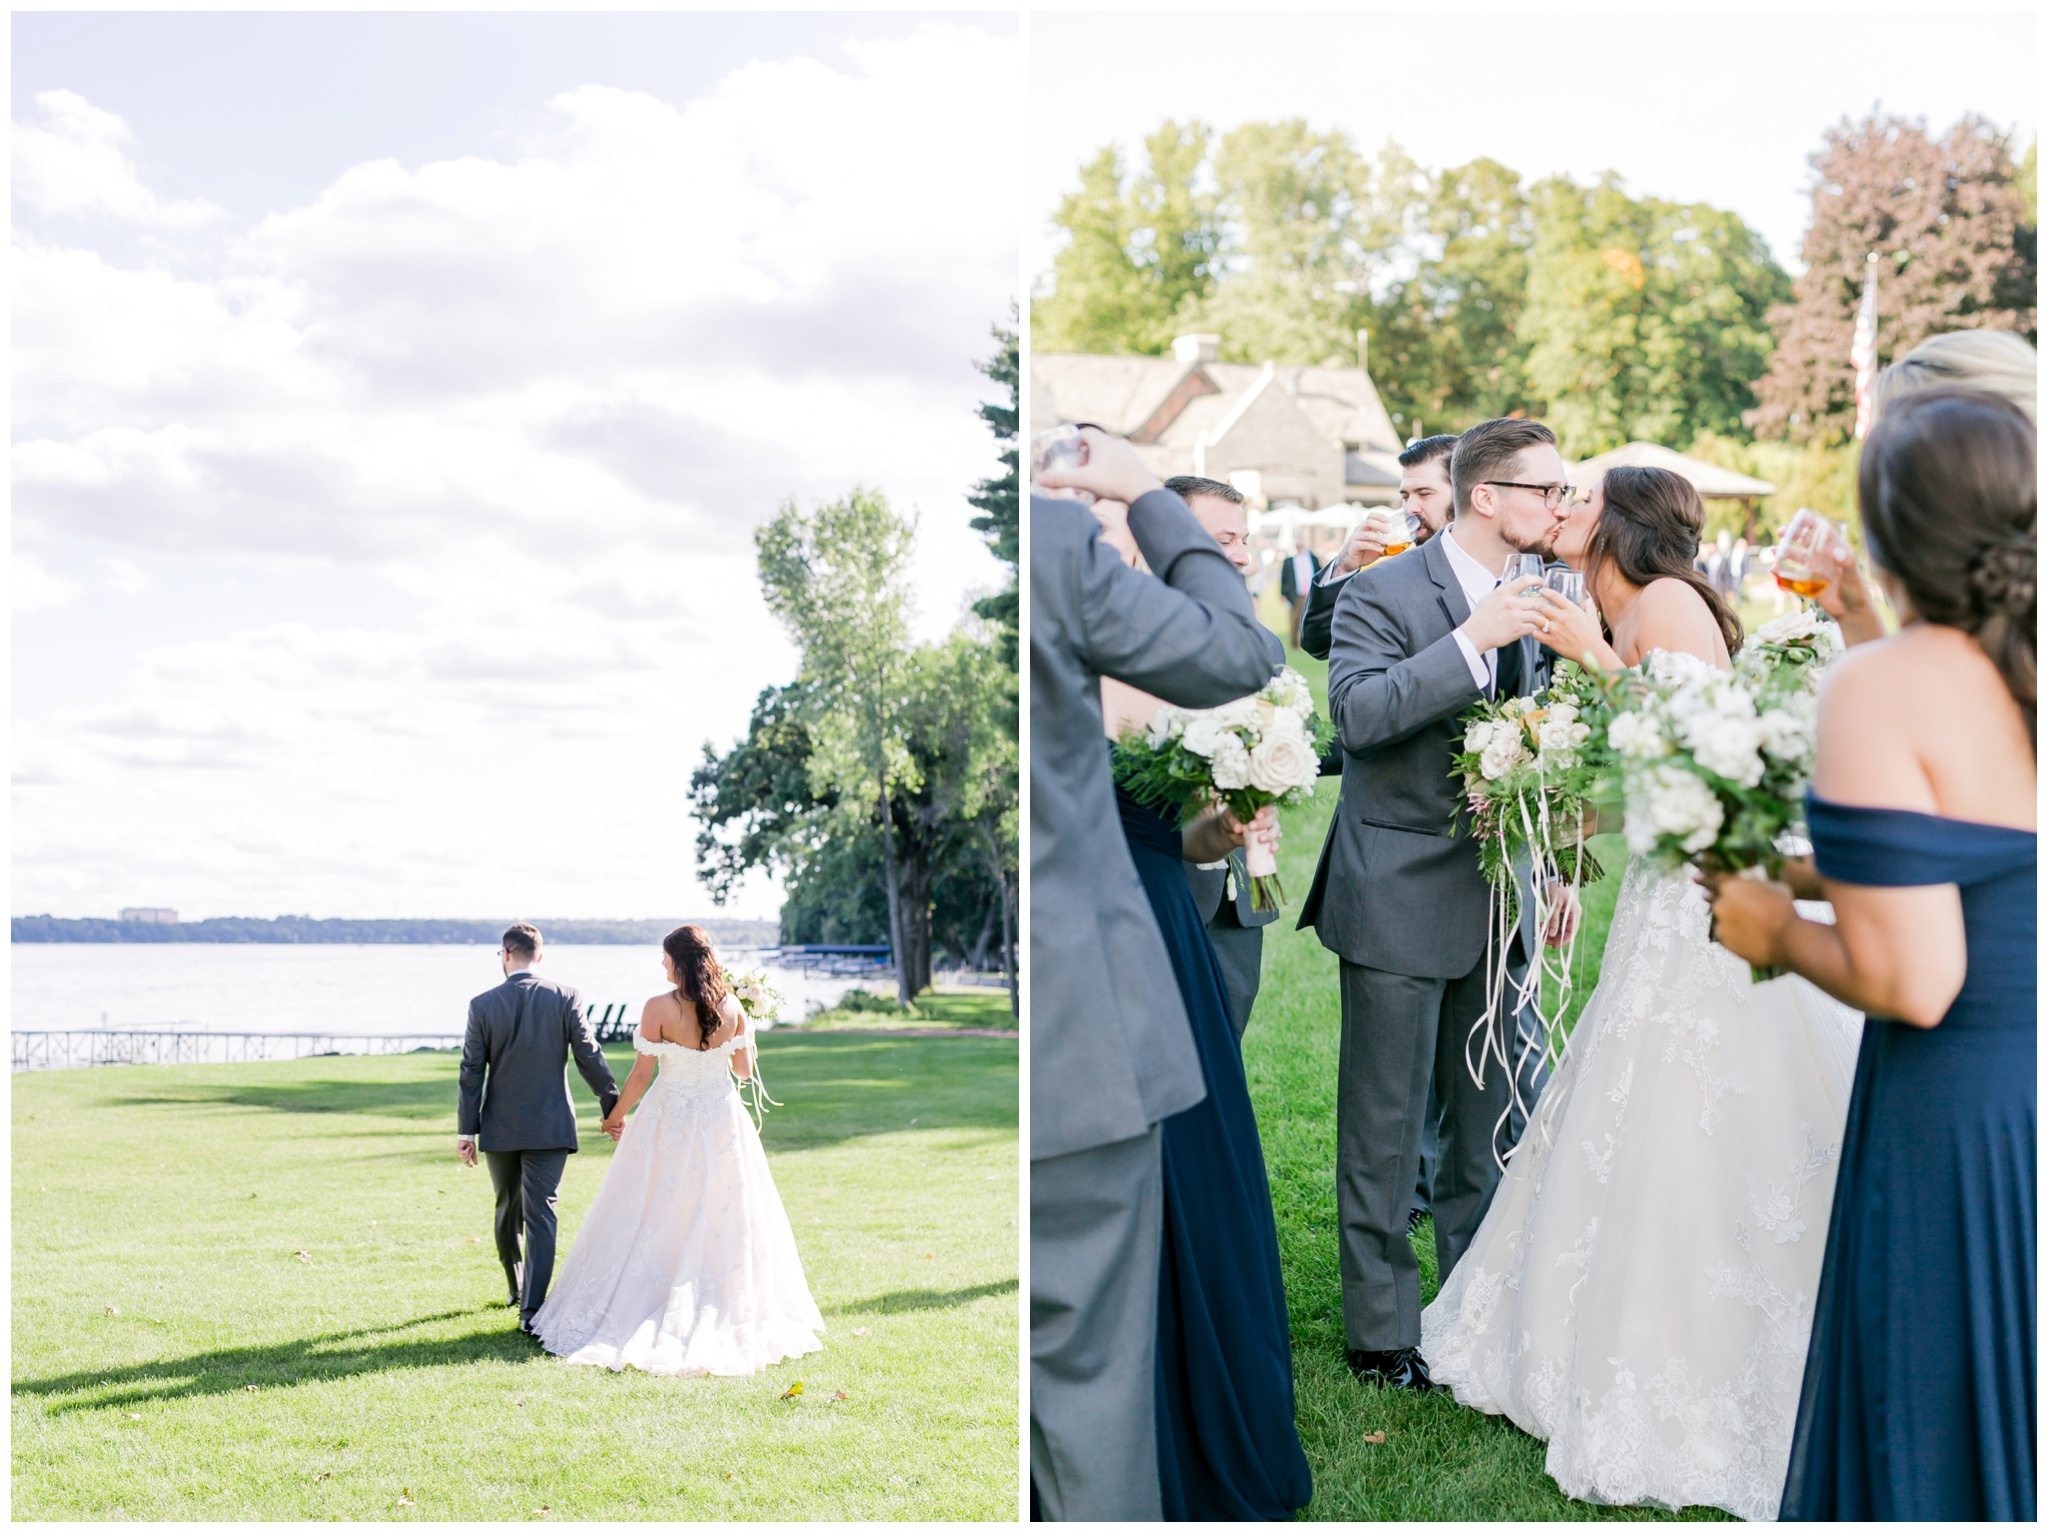 bishops_bay_country_club_wedding_middleton_wisconsin_caynay_photo_4716.jpg